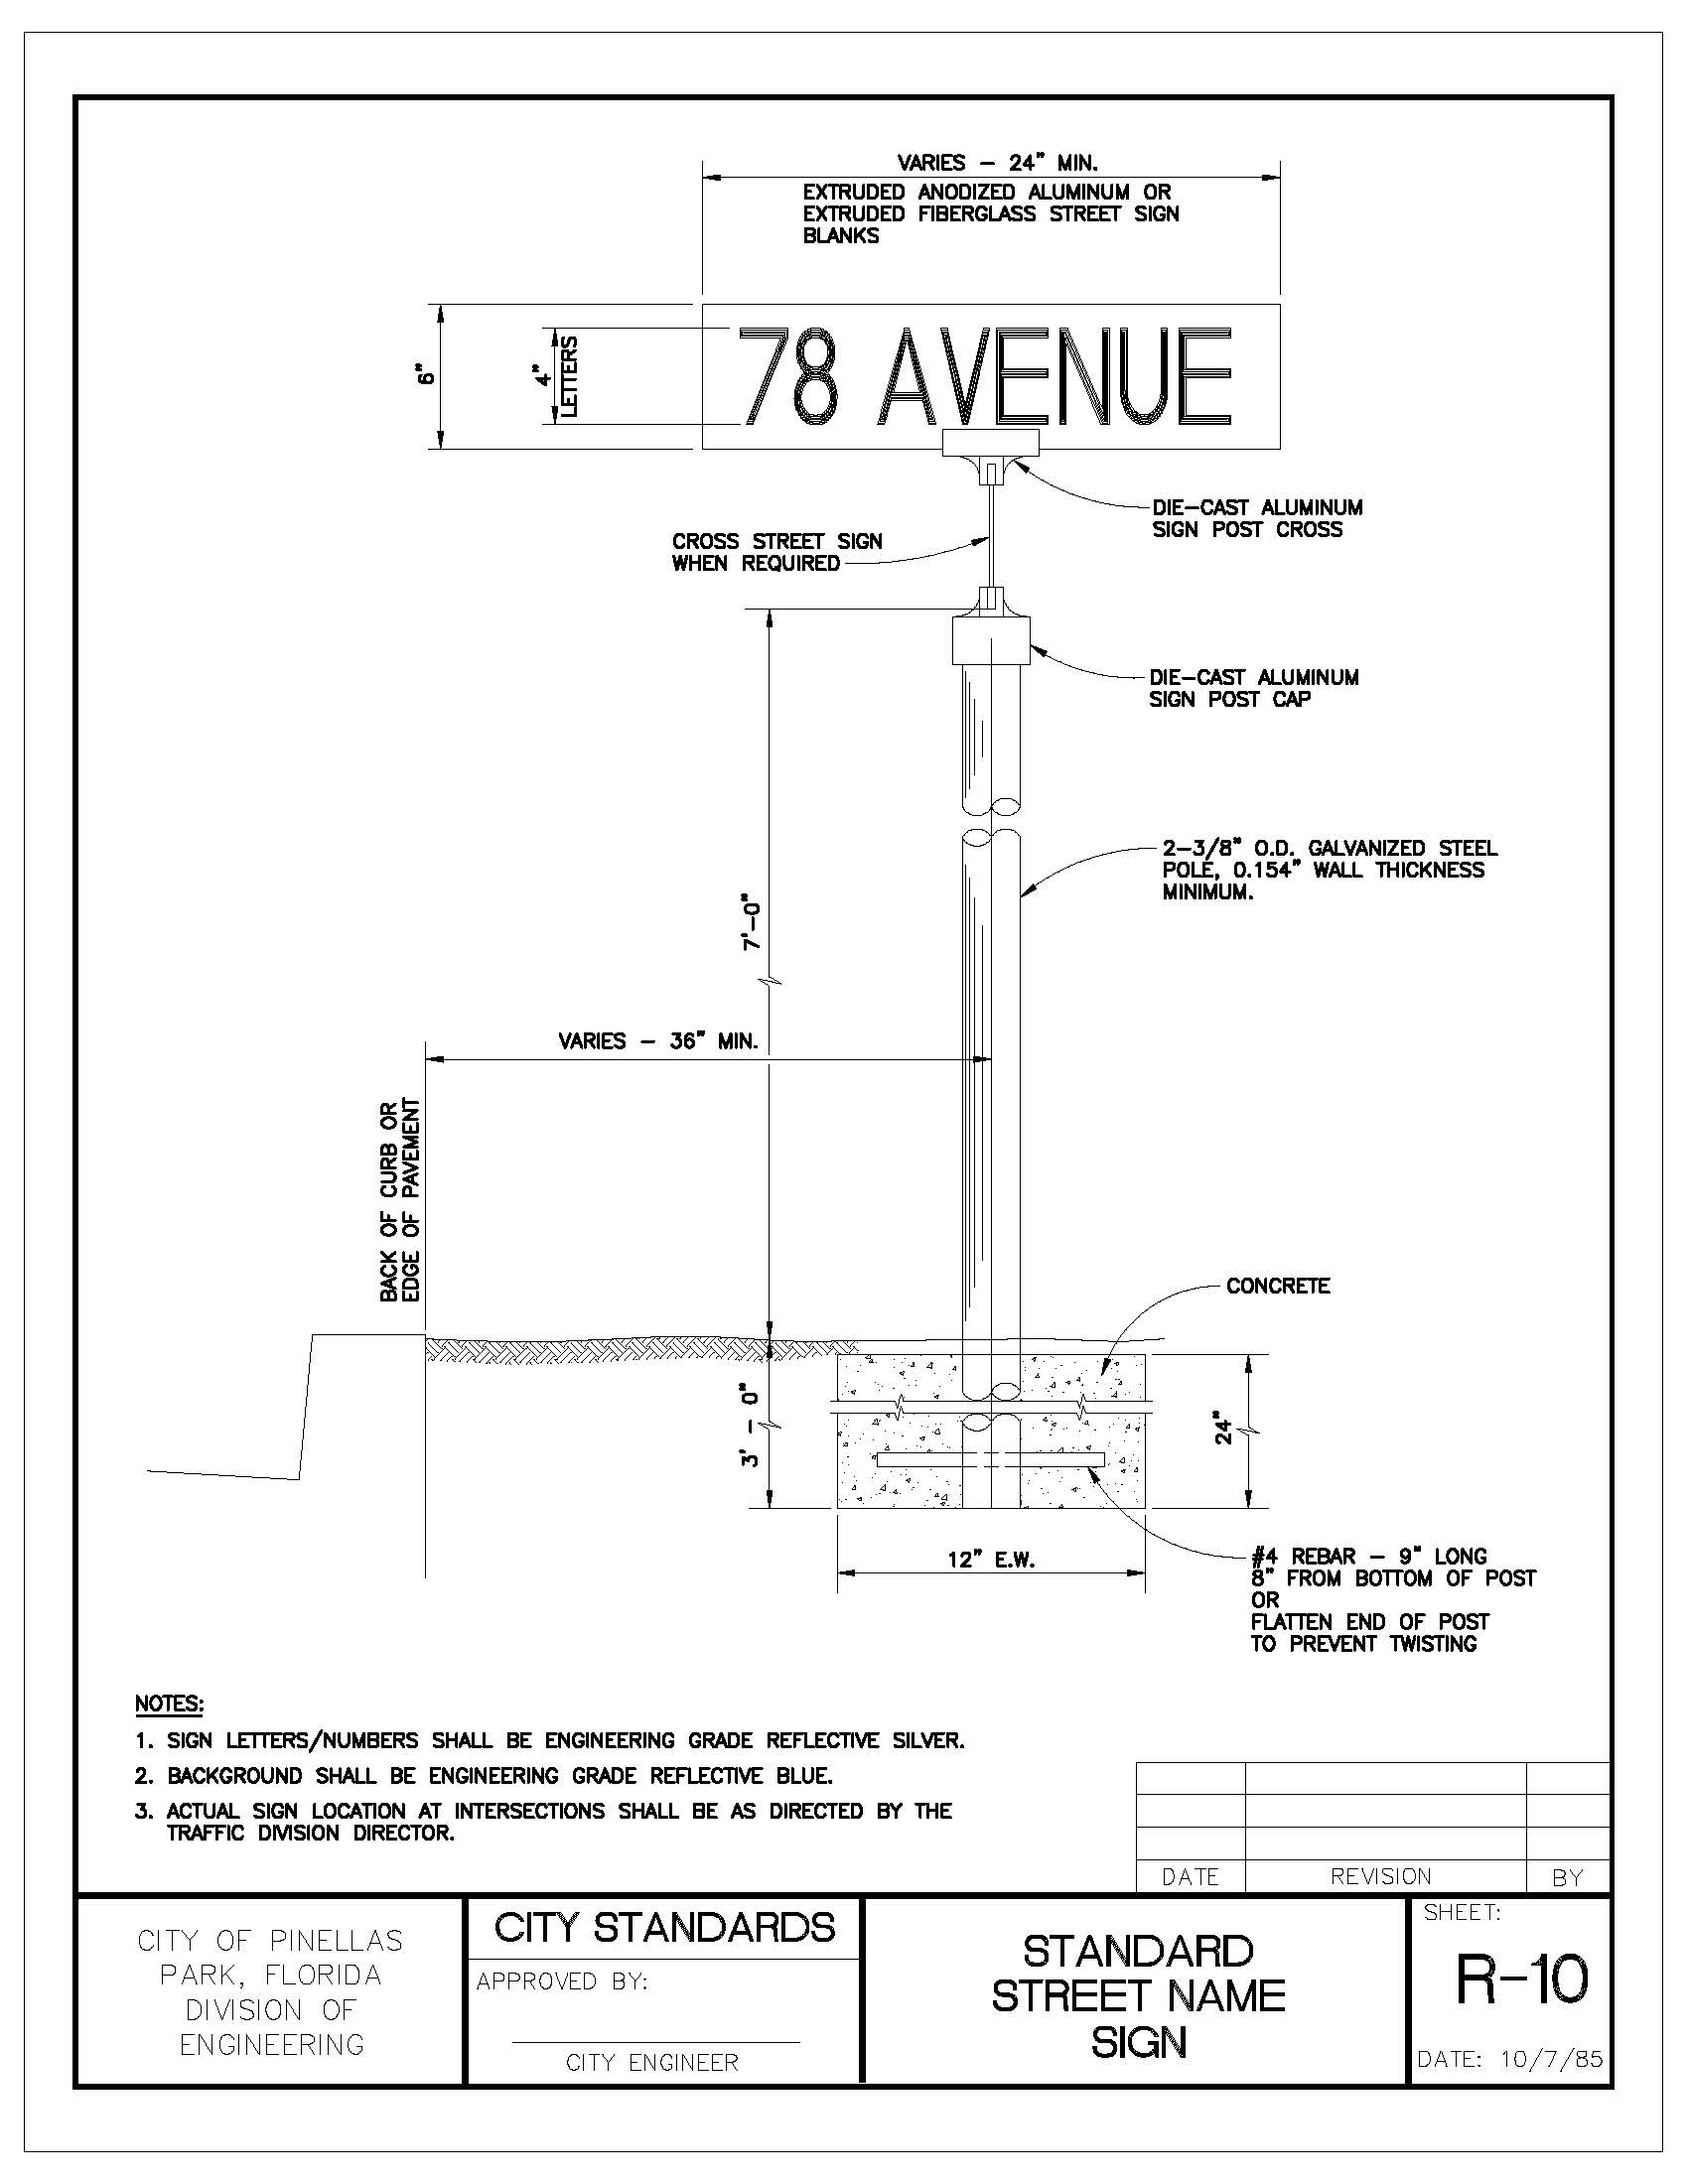 Engineering Manual v5_201908121127291138_Page_047 standard street name sign